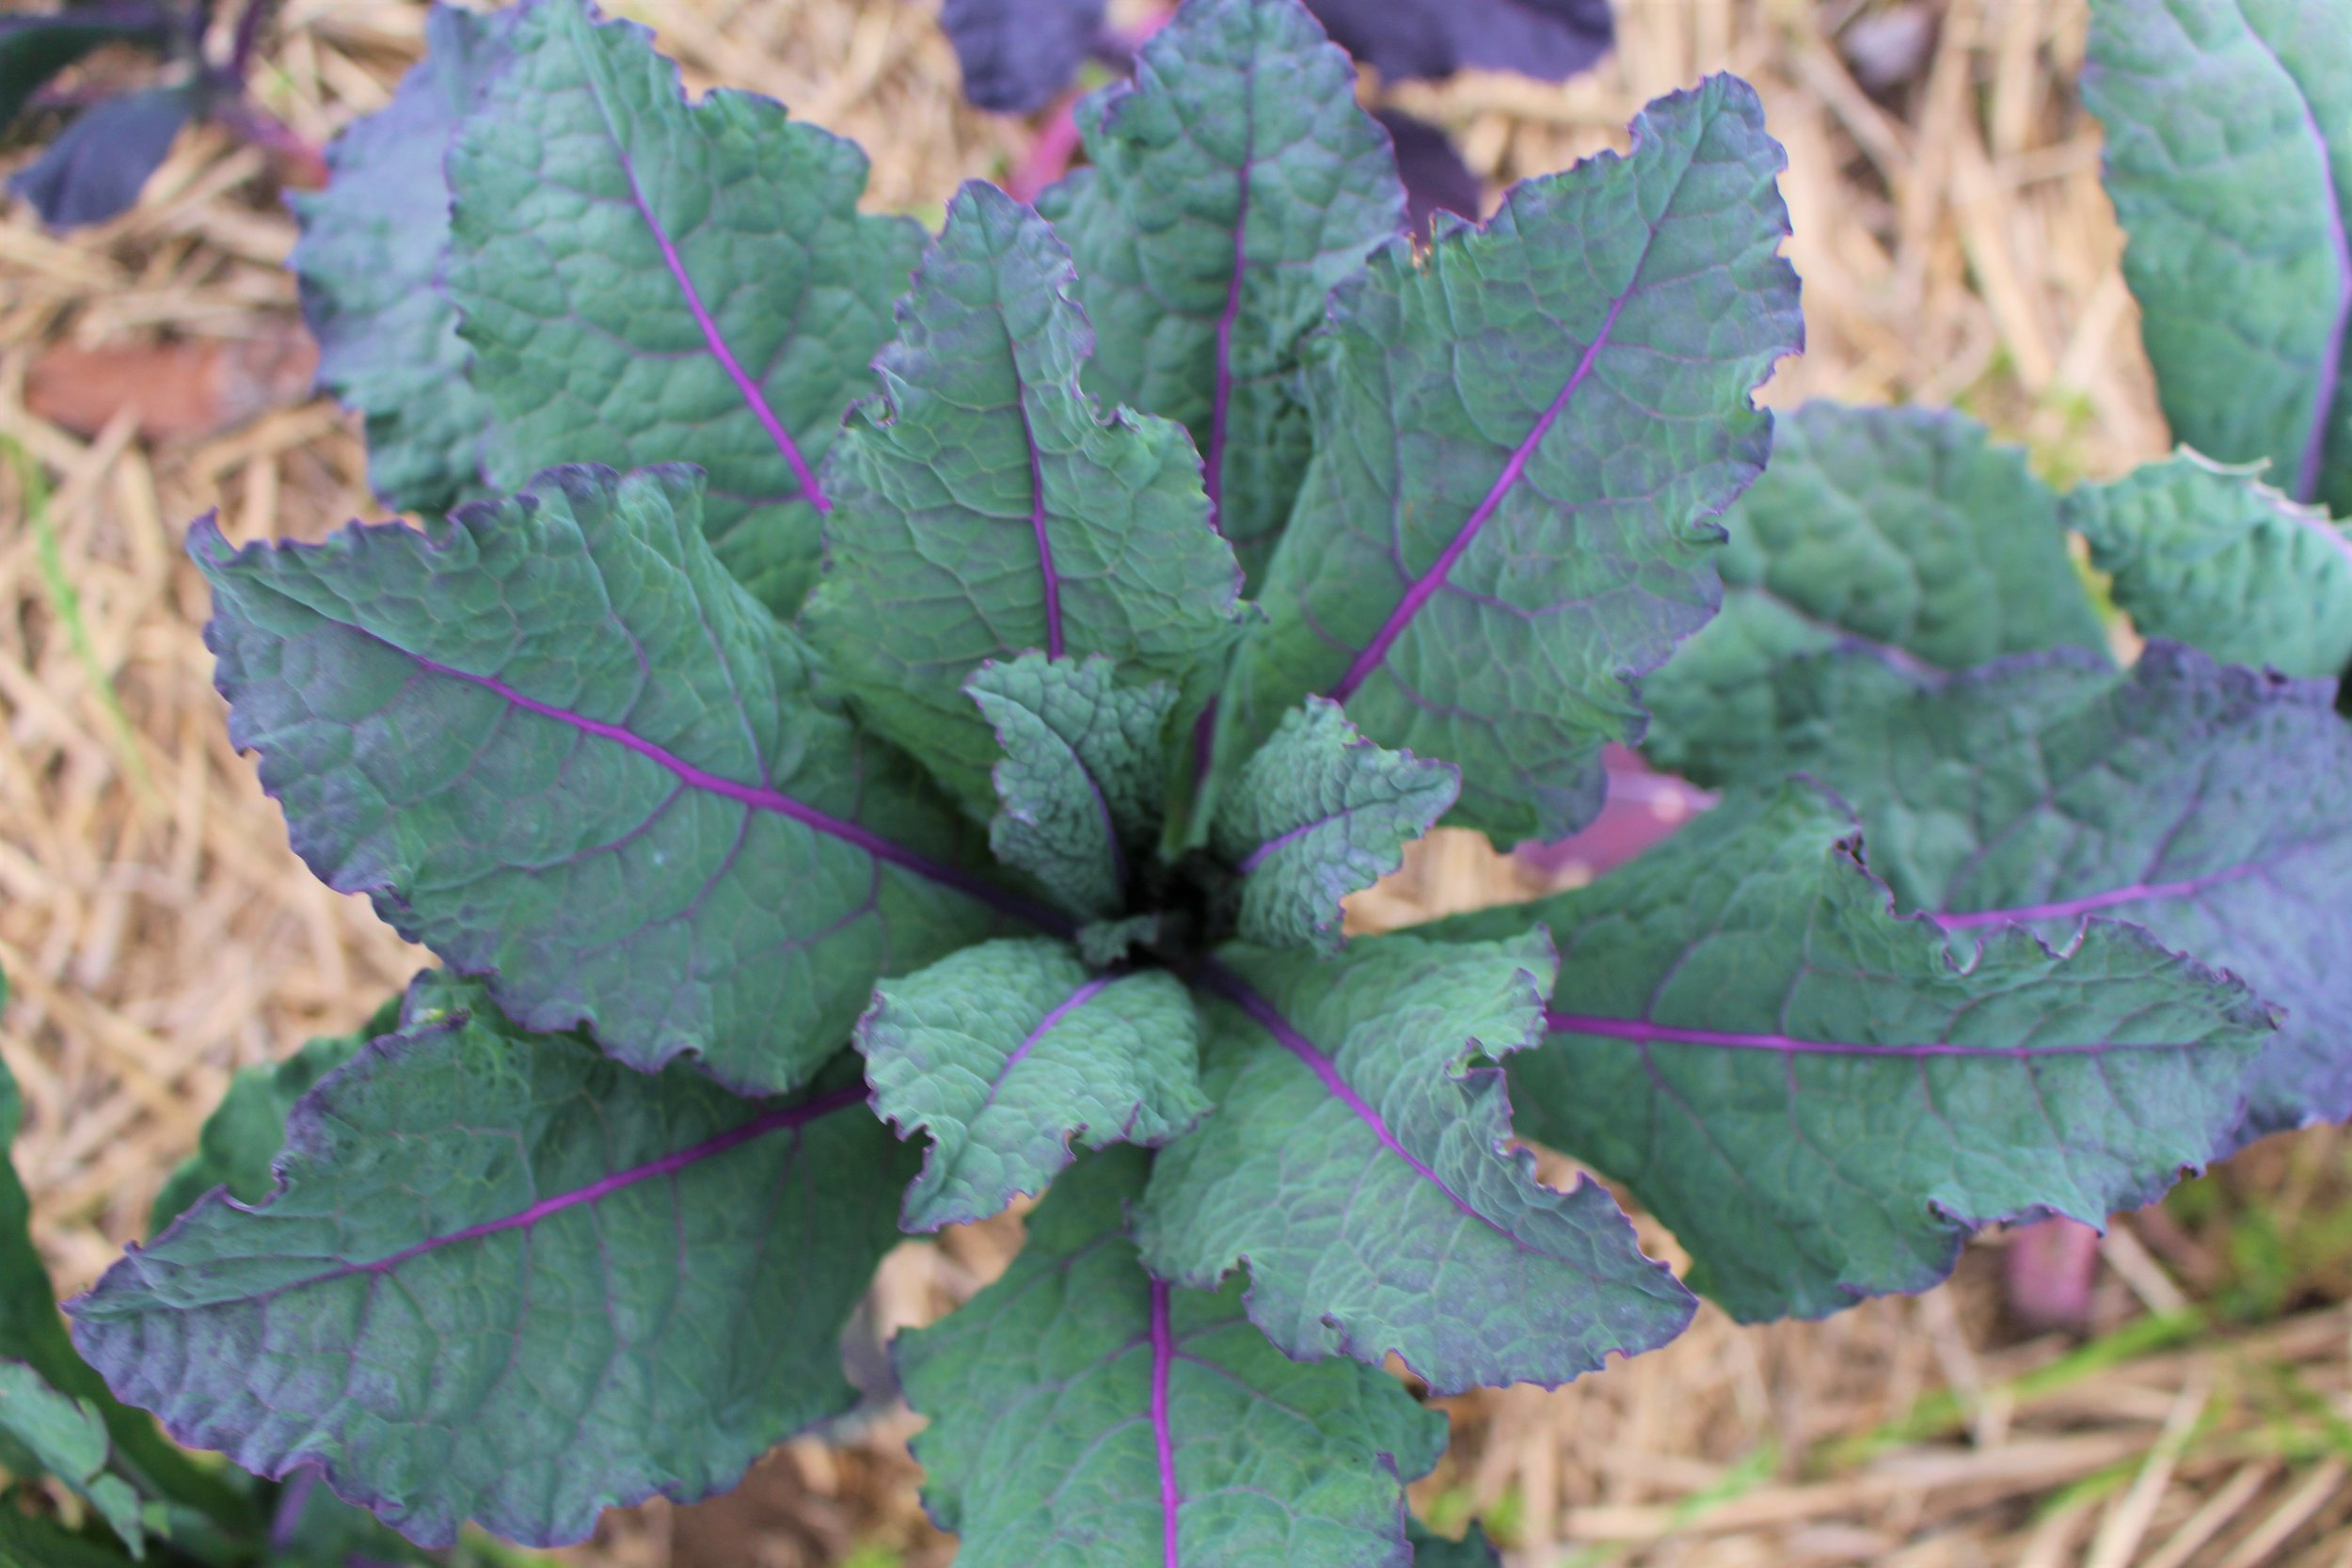 Dazzling Blue Lacinato Kale - The name says it all!